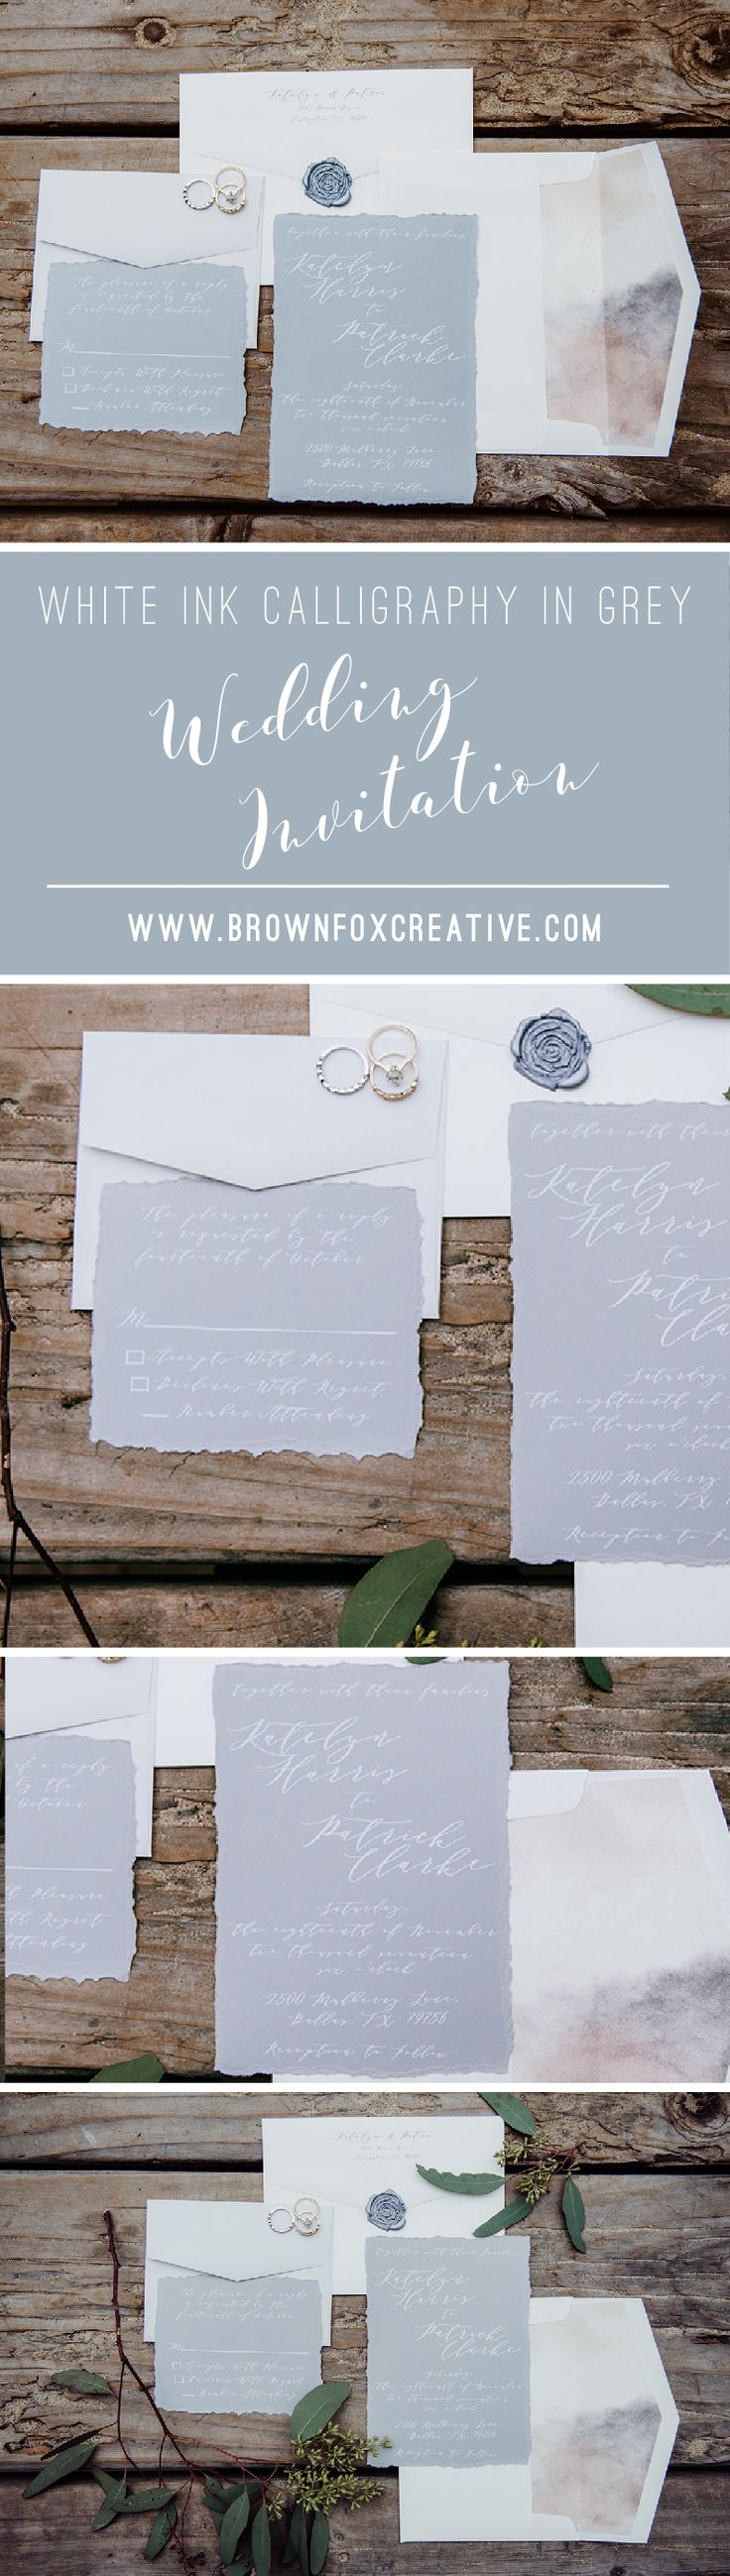 how to address wedding invites%0A White Ink Calligraphy Natural Modern Wedding Invitation in Grey and Ivory  u      Envelope Liner  RSVP